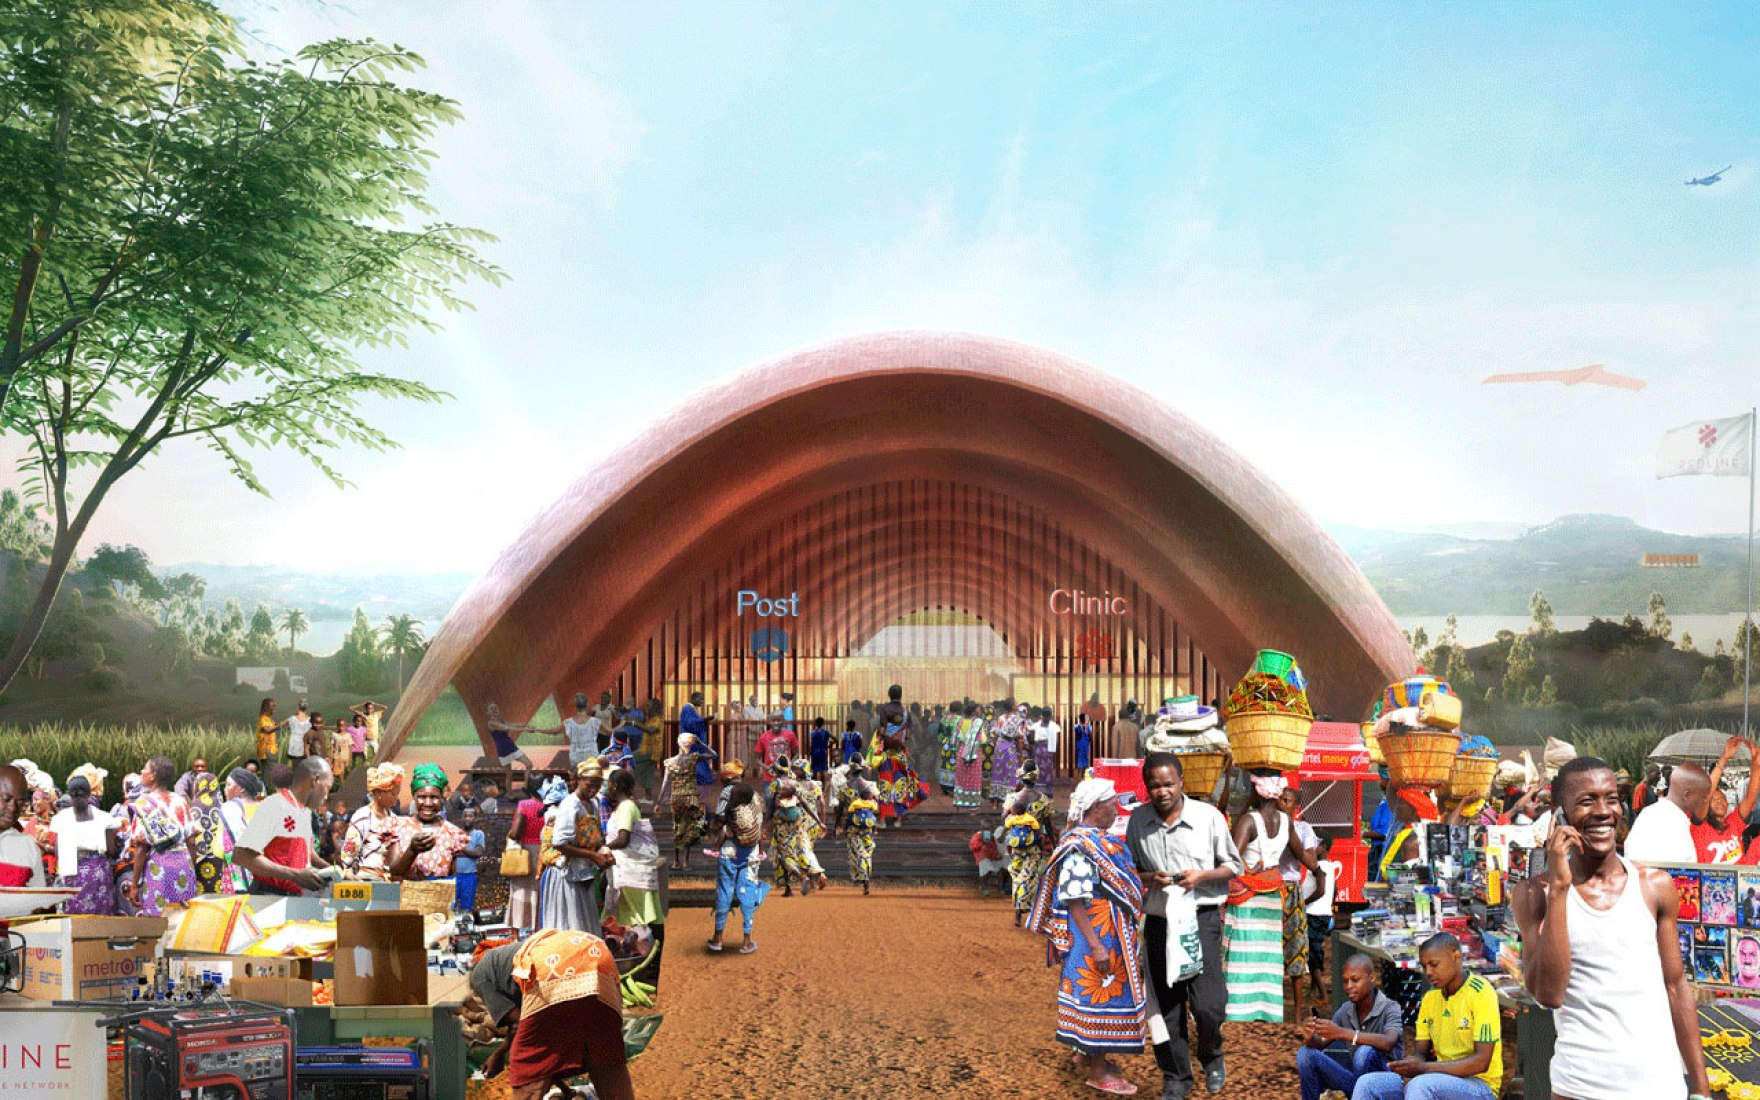 Proposals for Droneport project by Norman Foster. Image courtesy of Foster + Partners.